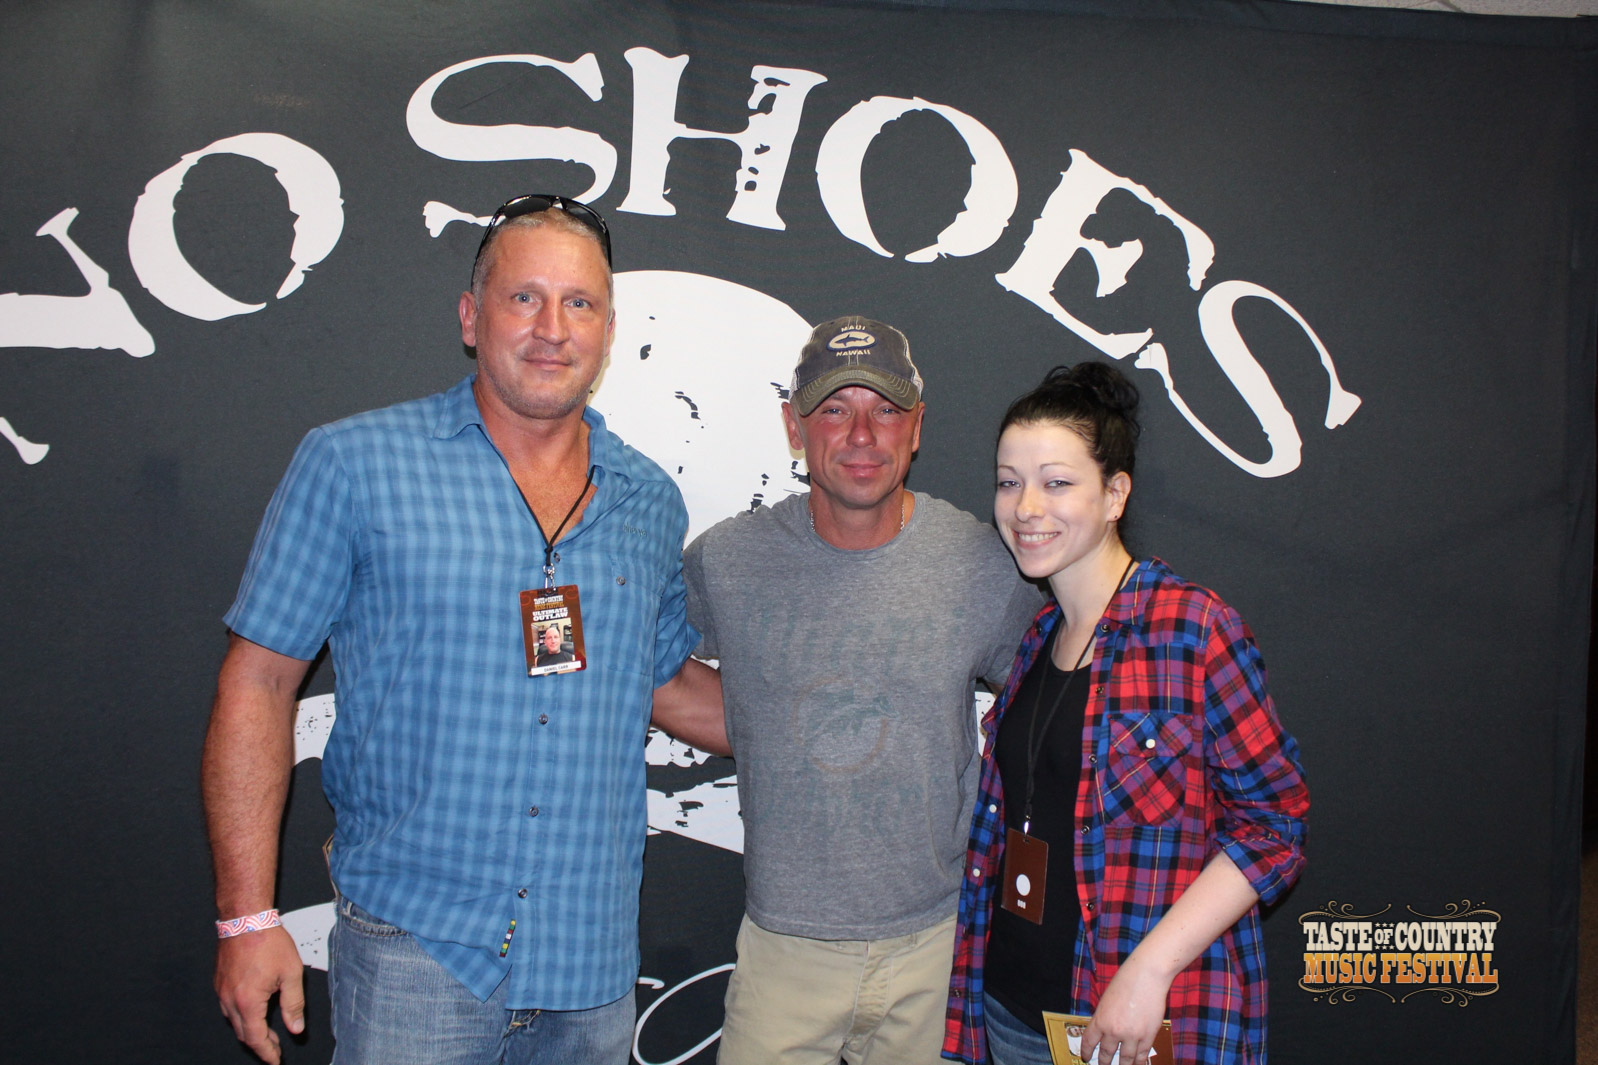 Photos Meet And Greet With Kenny Chesney Taste Of Country